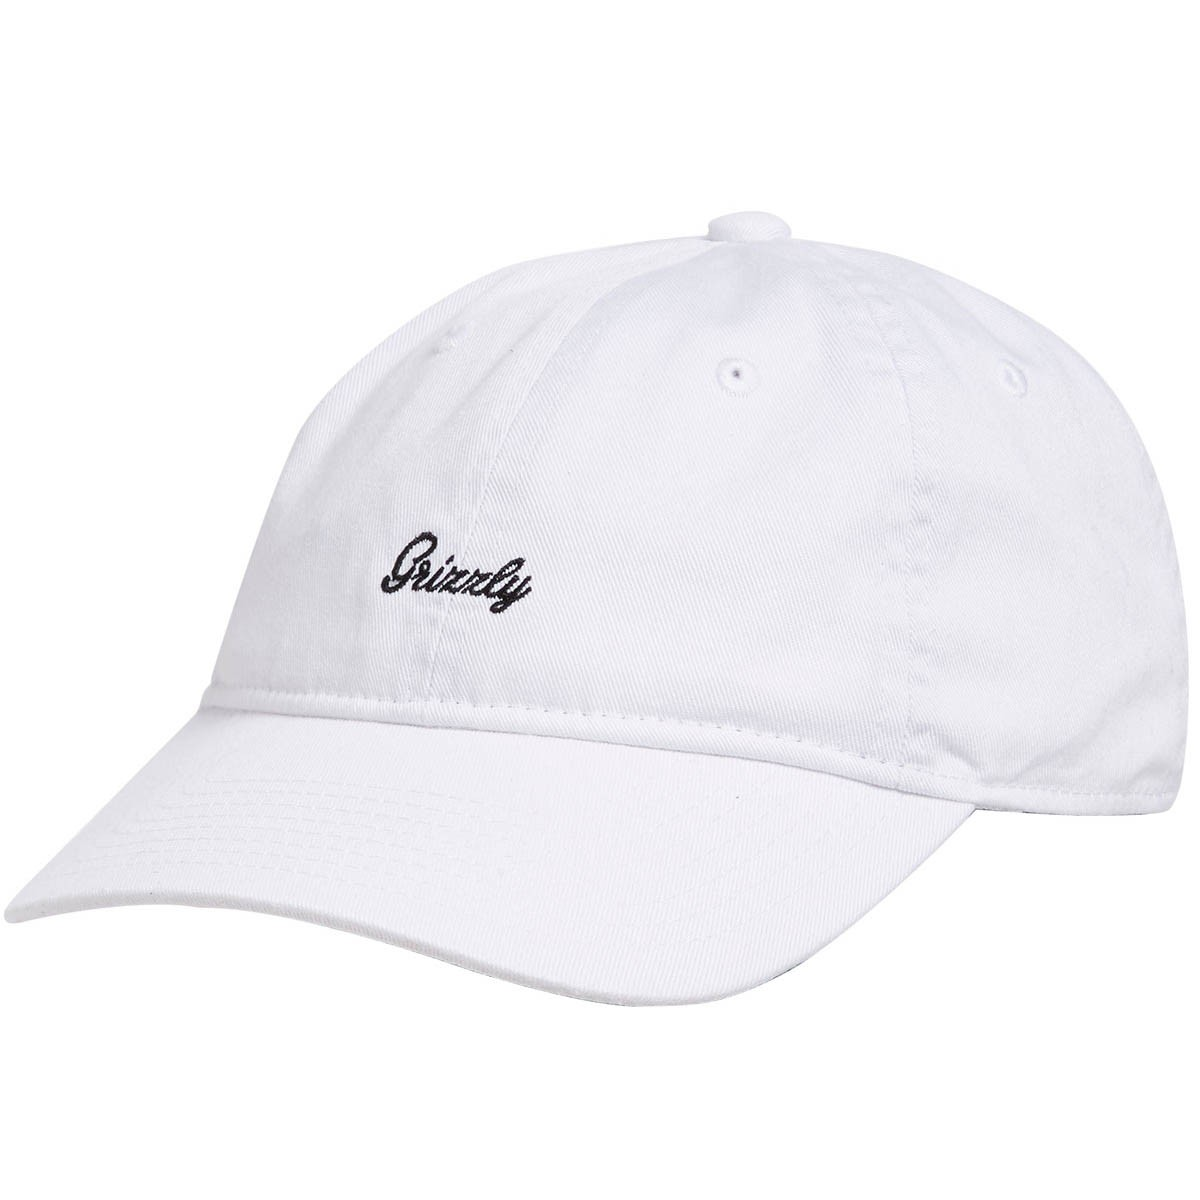 Grizzly Late to the Game Dad Hat 378223642f2